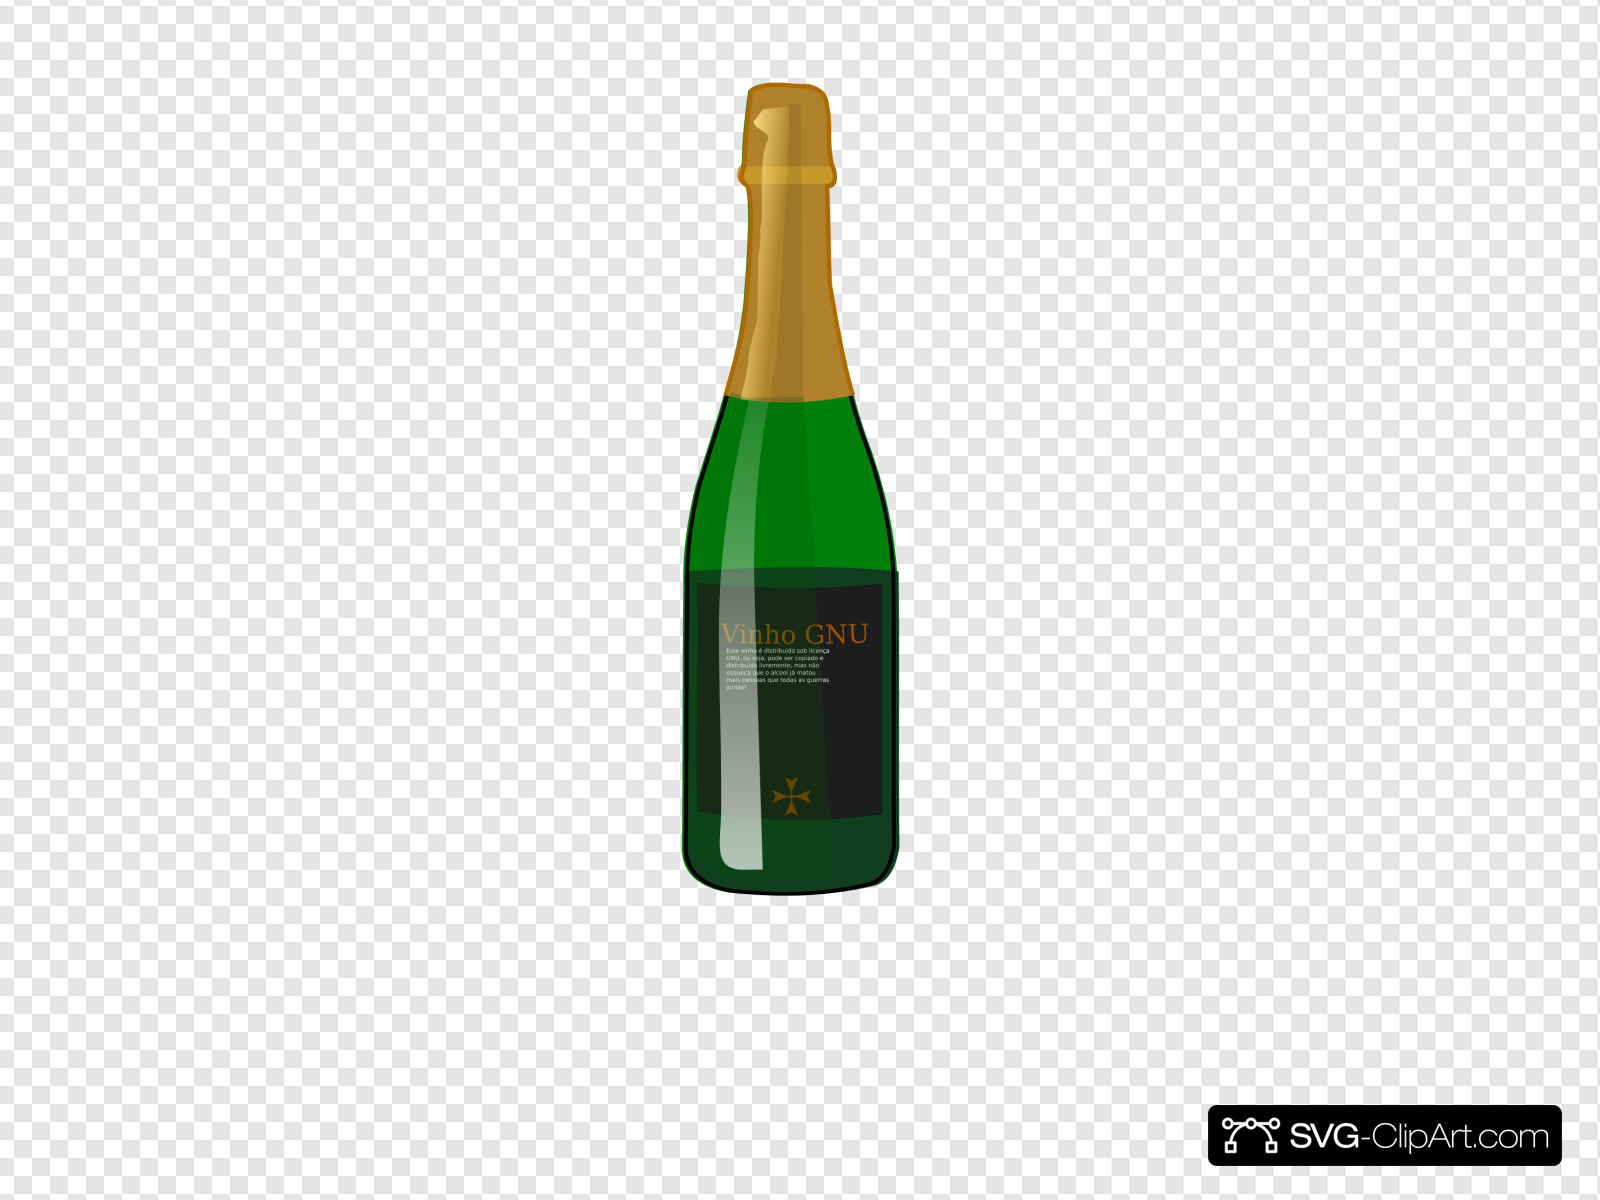 Wine Gnu Clip art, Icon and SVG.